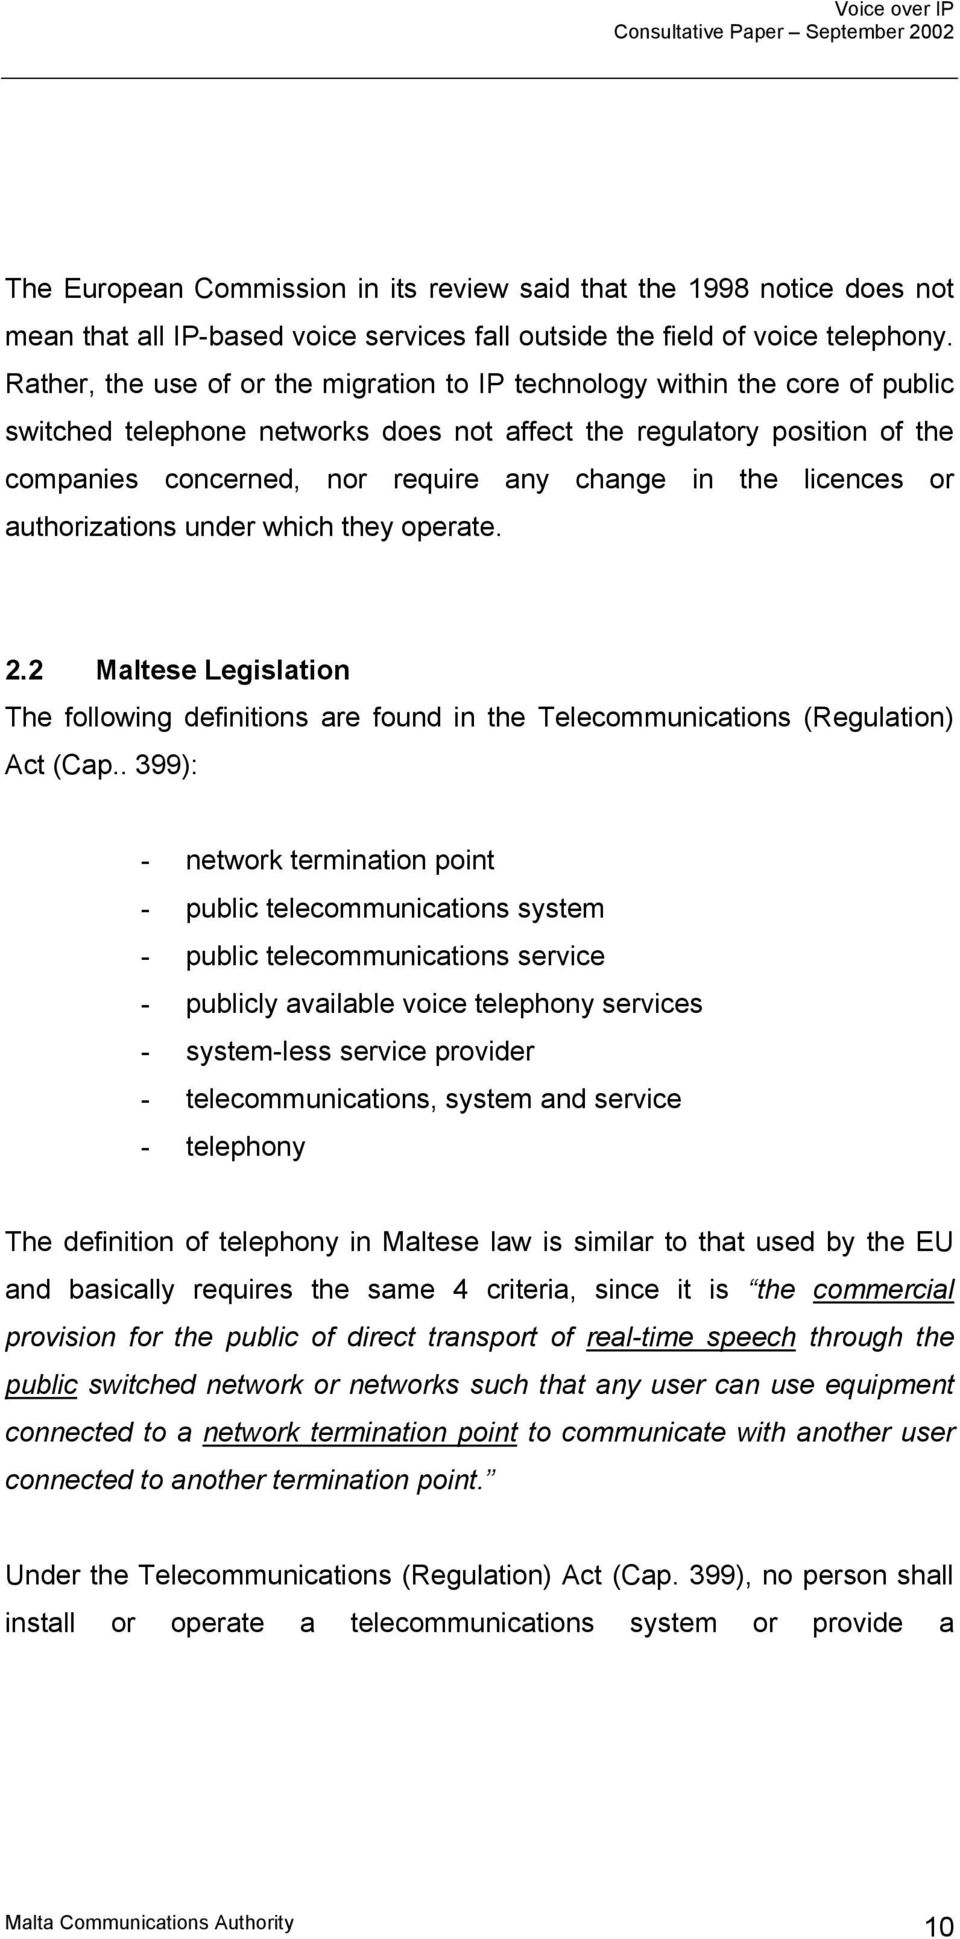 in the licences or authorizations under which they operate. 2.2 Maltese Legislation The following definitions are found in the Telecommunications (Regulation) Act (Cap.